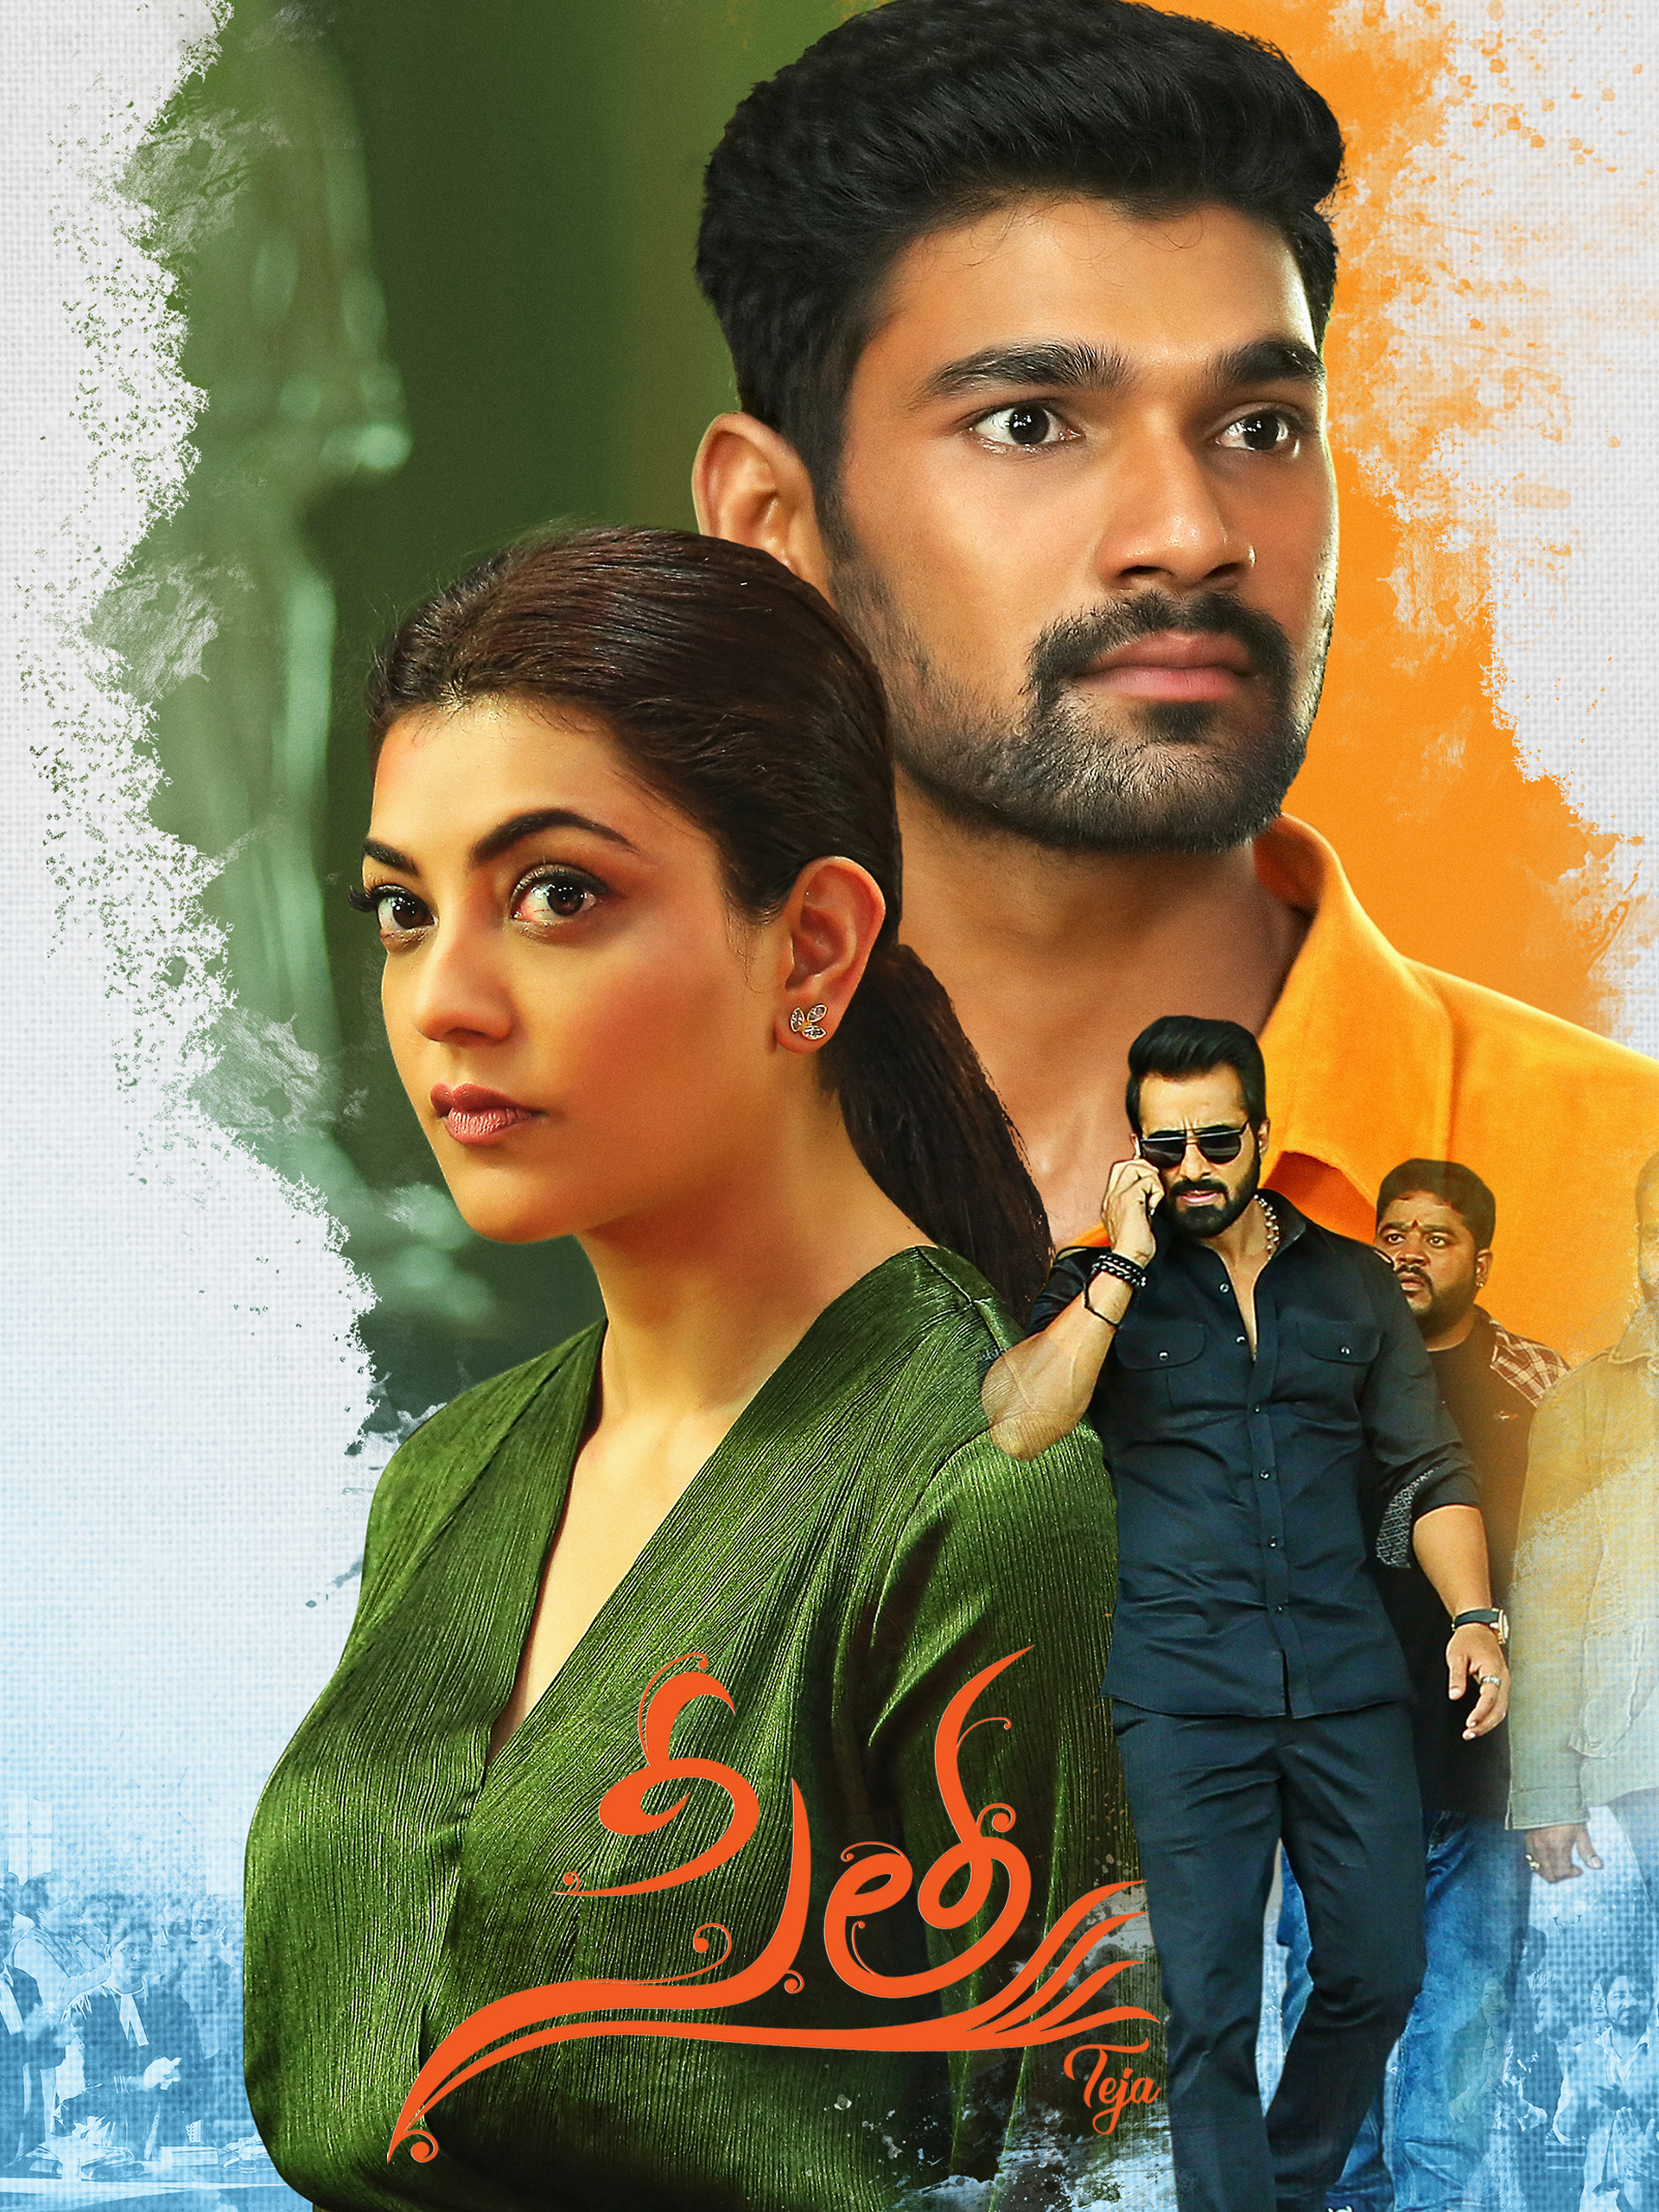 Sita Ram (Sita) 2020 Hindi Dubbed 720p HDRip 930MB Download